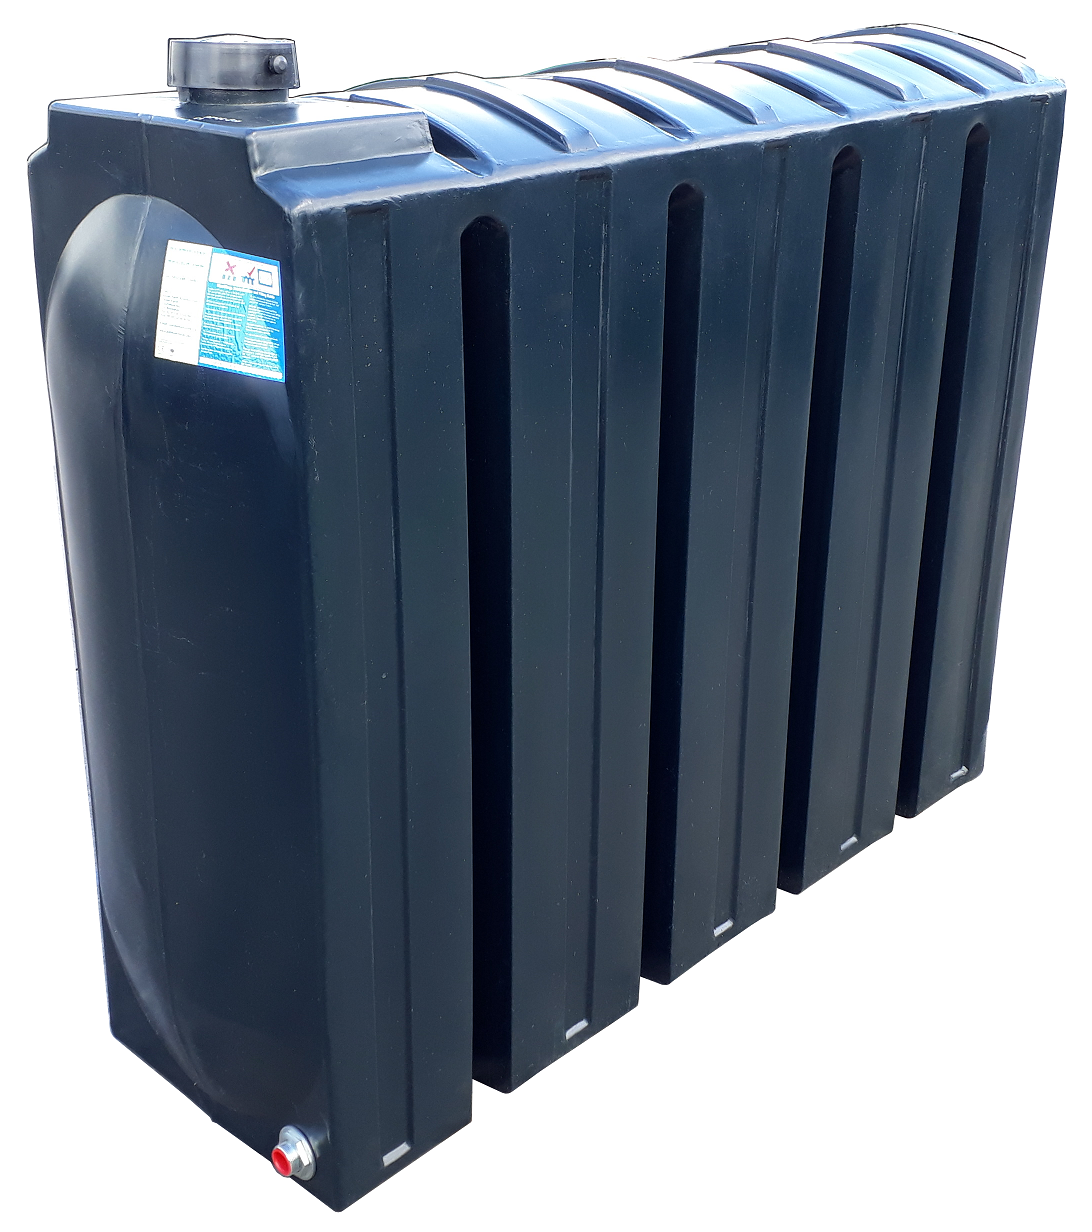 1000 Litre Rectangular Oil Tank Image